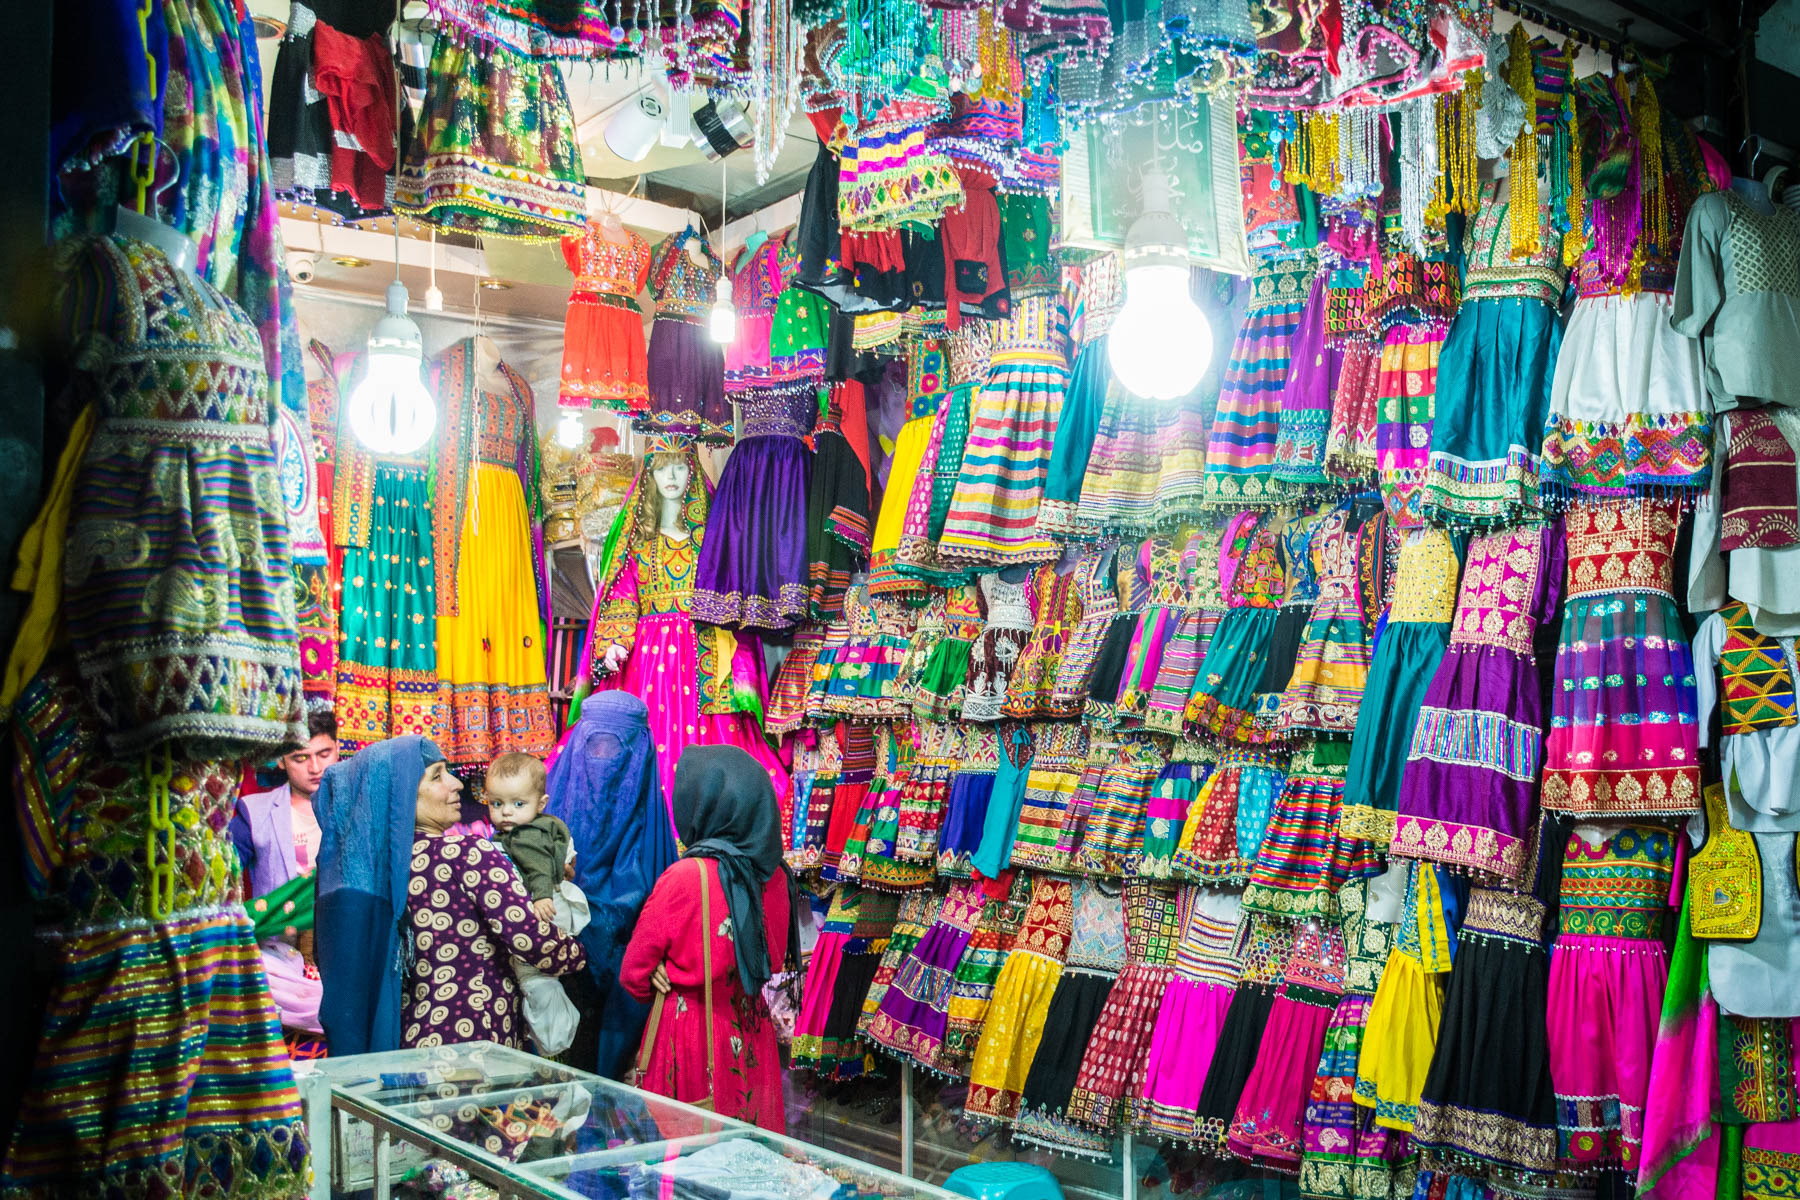 Photos of Mazar-i-Sharif, Afghanistan - Women in burqa shopping for colorful clothes in the central bazar - Lost With Purpose